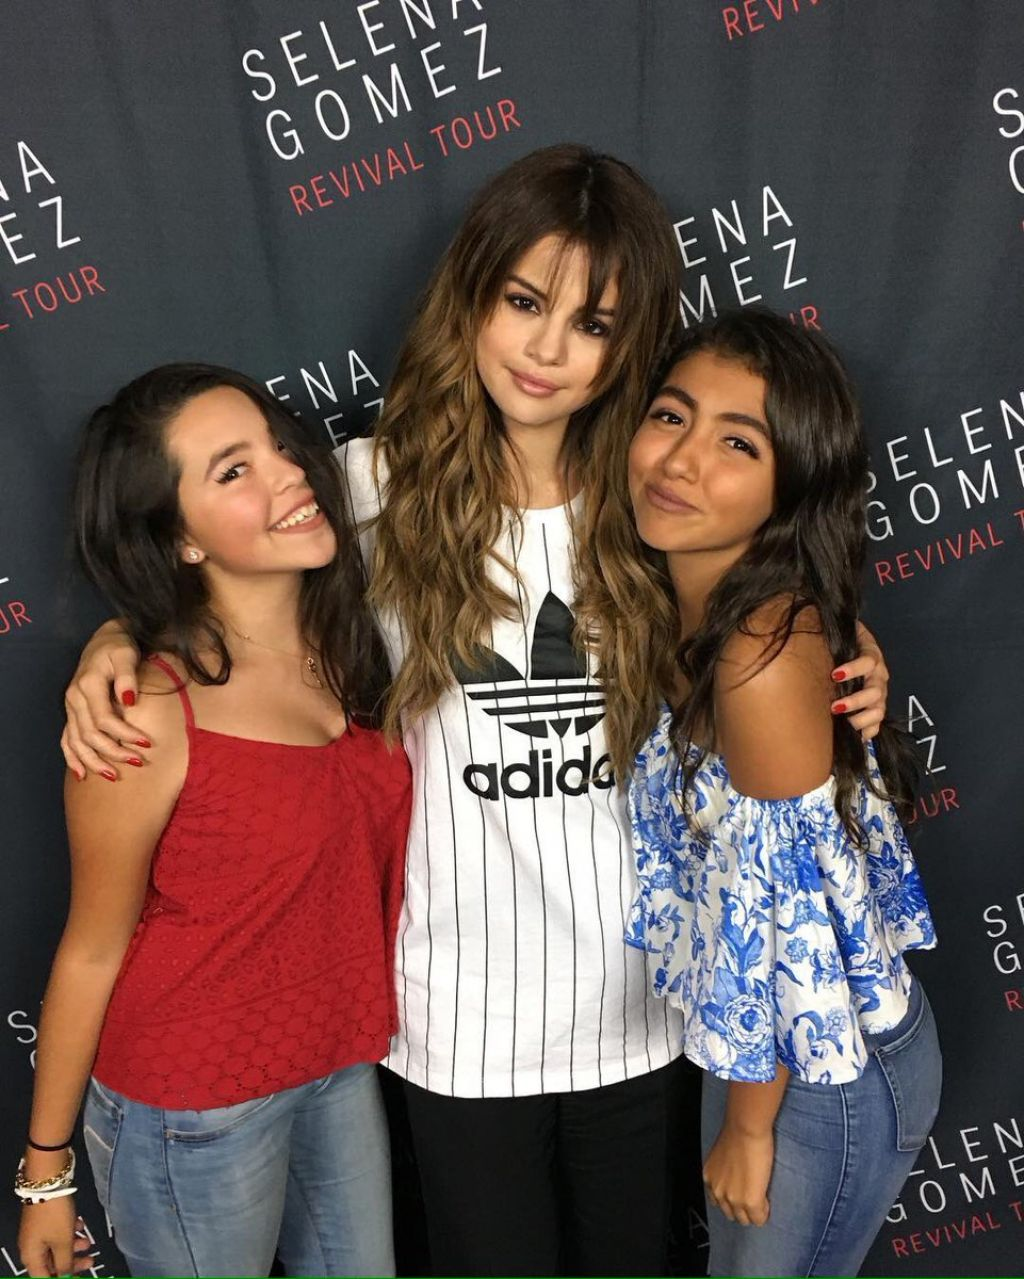 Gomez meet greet at the valley view casino center in san diego selena gomez meet greet at the valley view casino center in san diego ca july 2016 kristyandbryce Choice Image